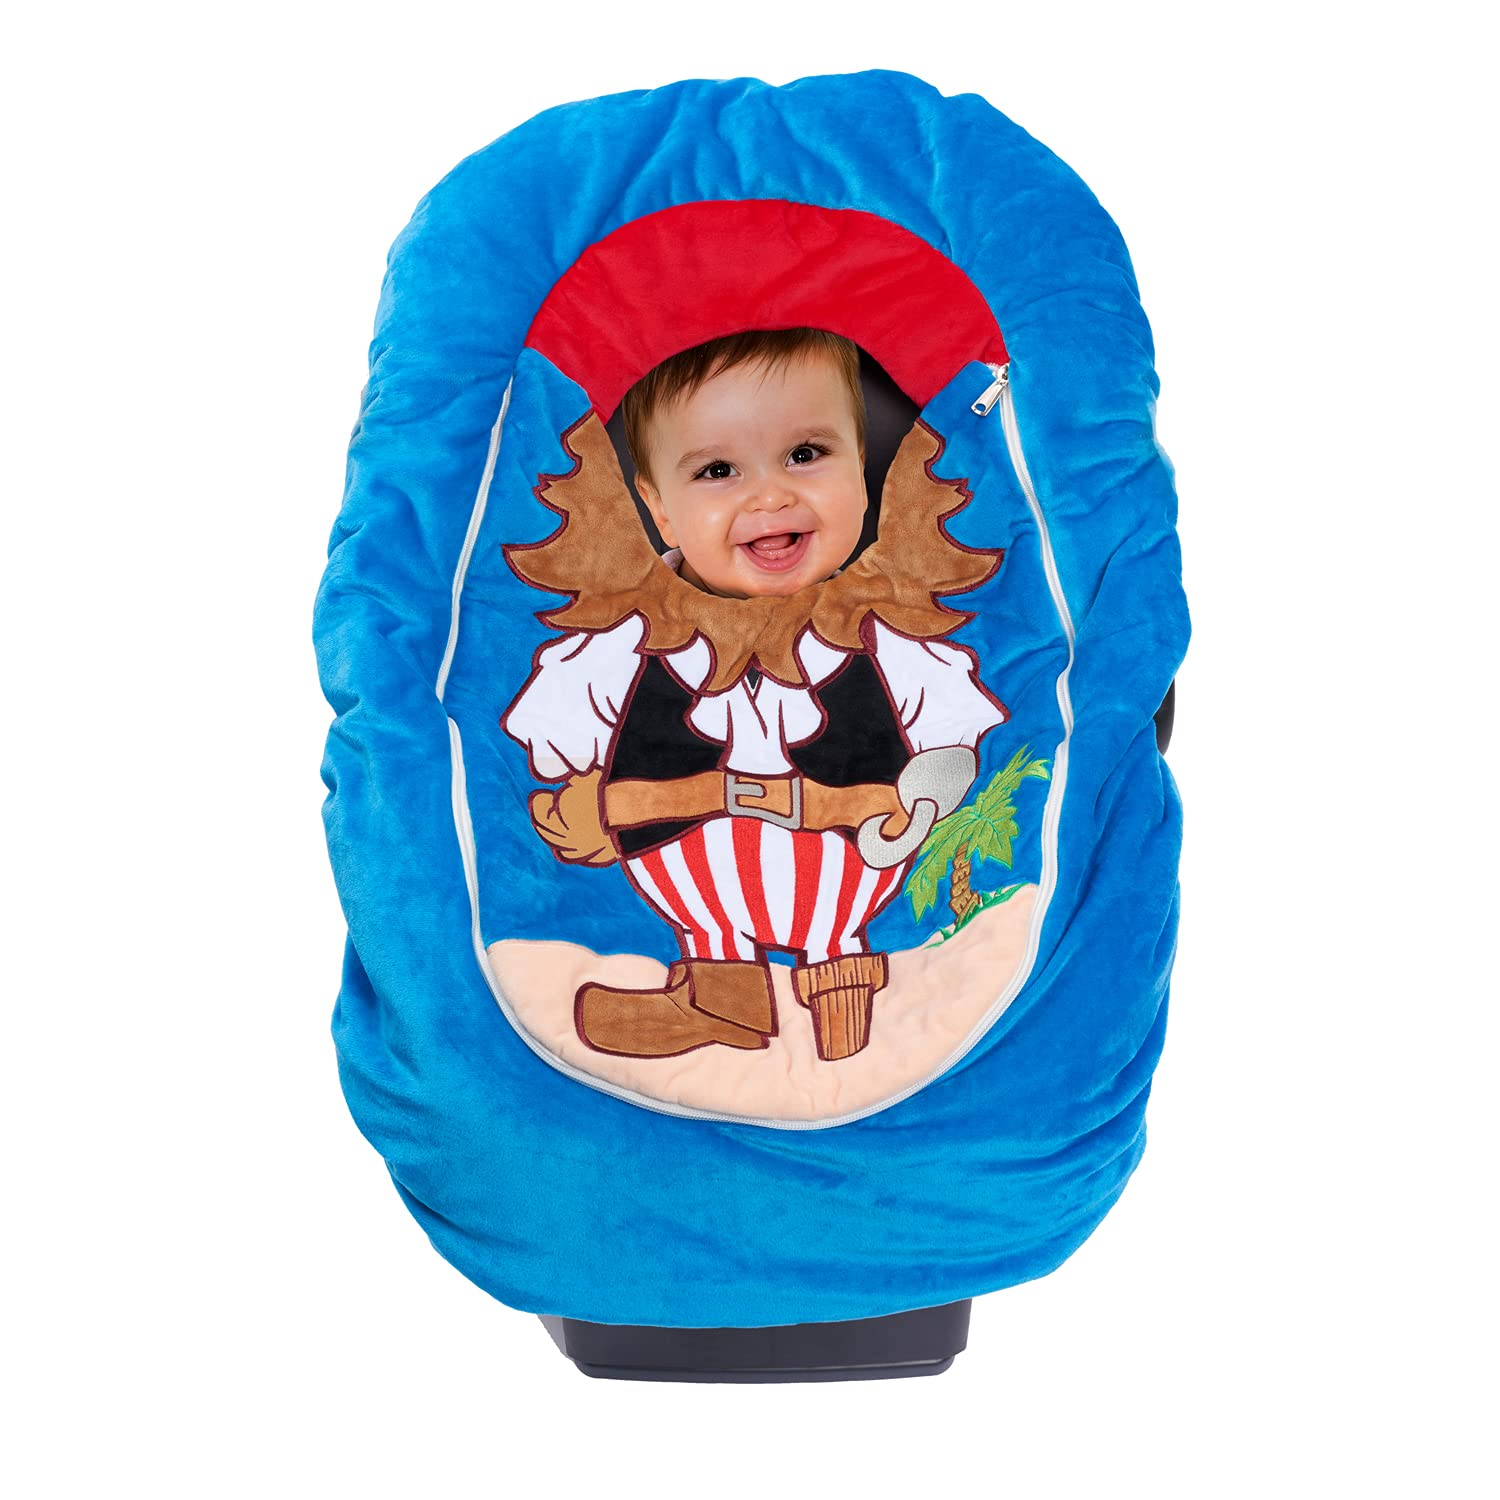 Car Seat Cuties, Baby Car Seat Cover, Stretchy Universal Fit Infant Car Seat CarrierCover for Baby Boys and Girls, Soft & Warm Baby Blanket StyleCar SeatCover, Infant Costume (Pirate)